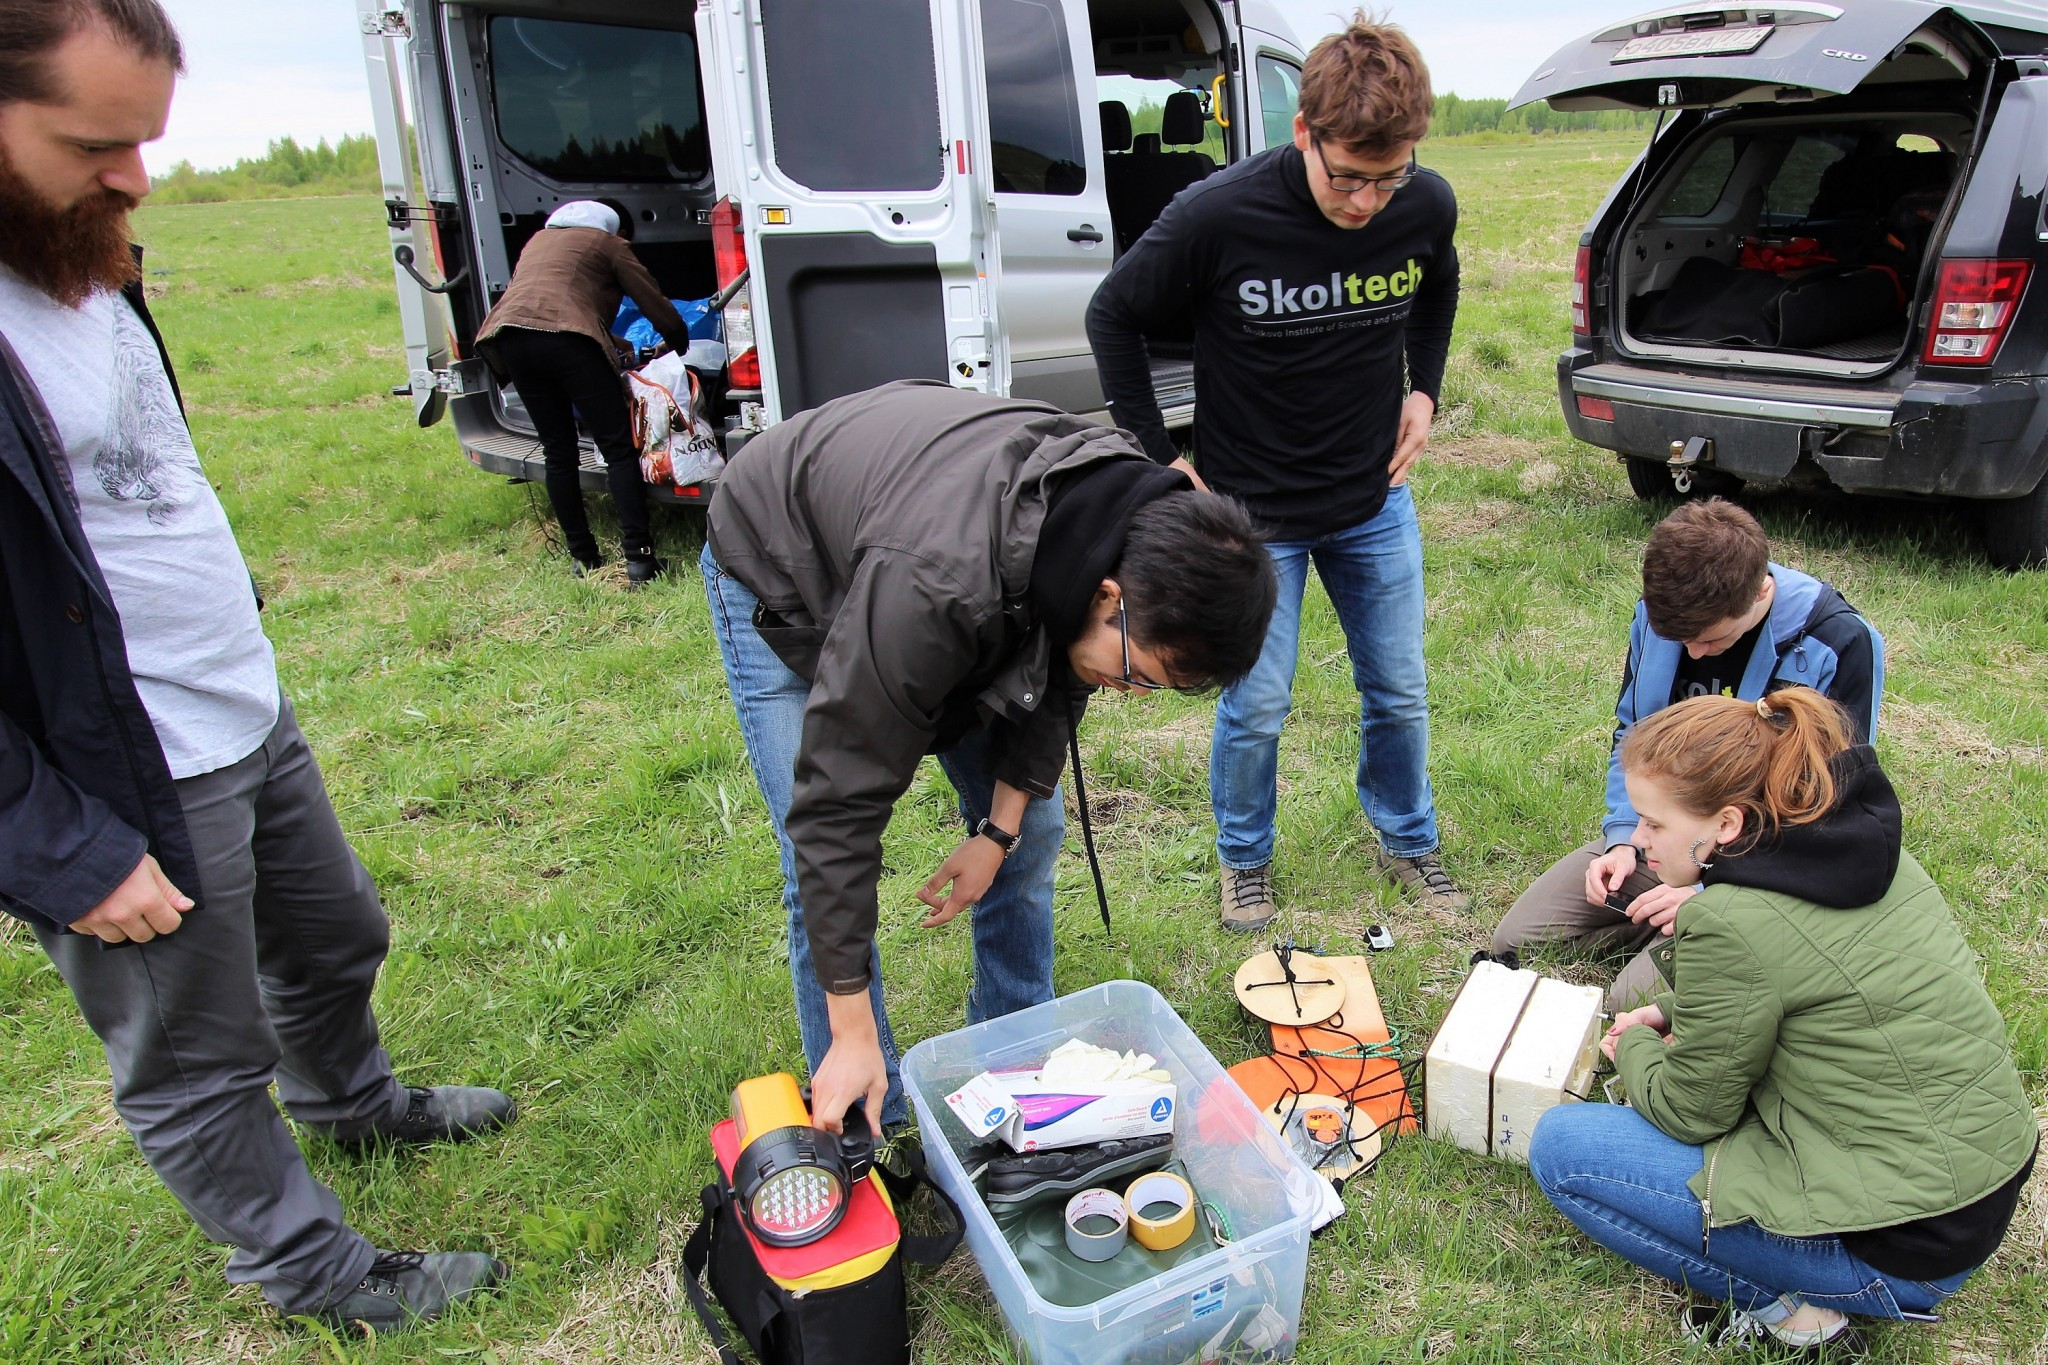 TAs Simone Briatore (left) and Rustam Akhtyamov (middle) help students as they prepare for the launch. Photo: Skoltech.